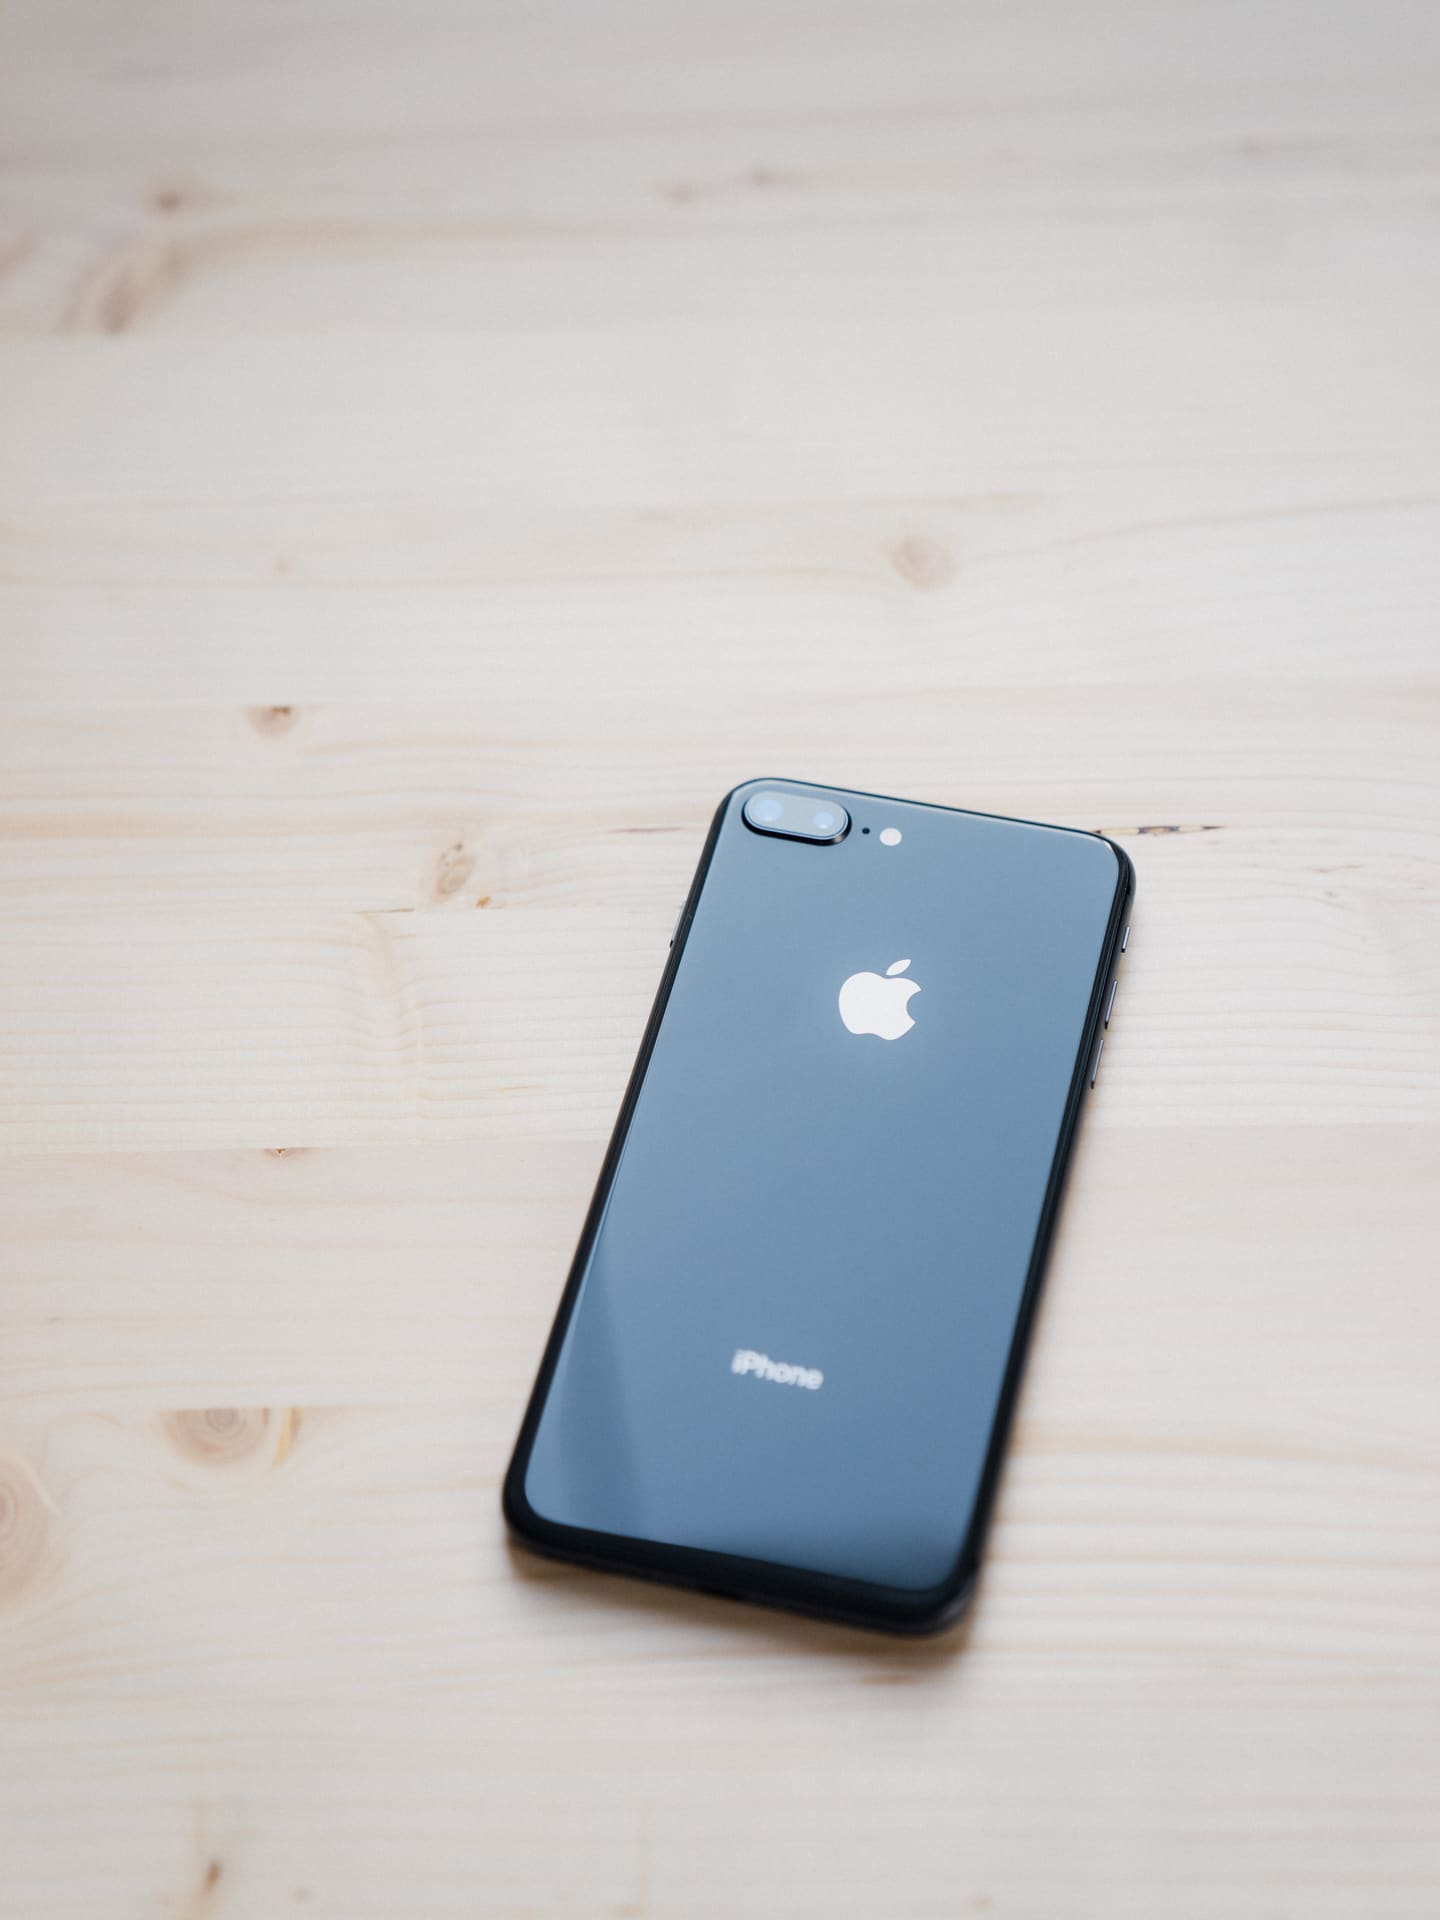 The iPhone 8 Plus Review – The Sweet Setup